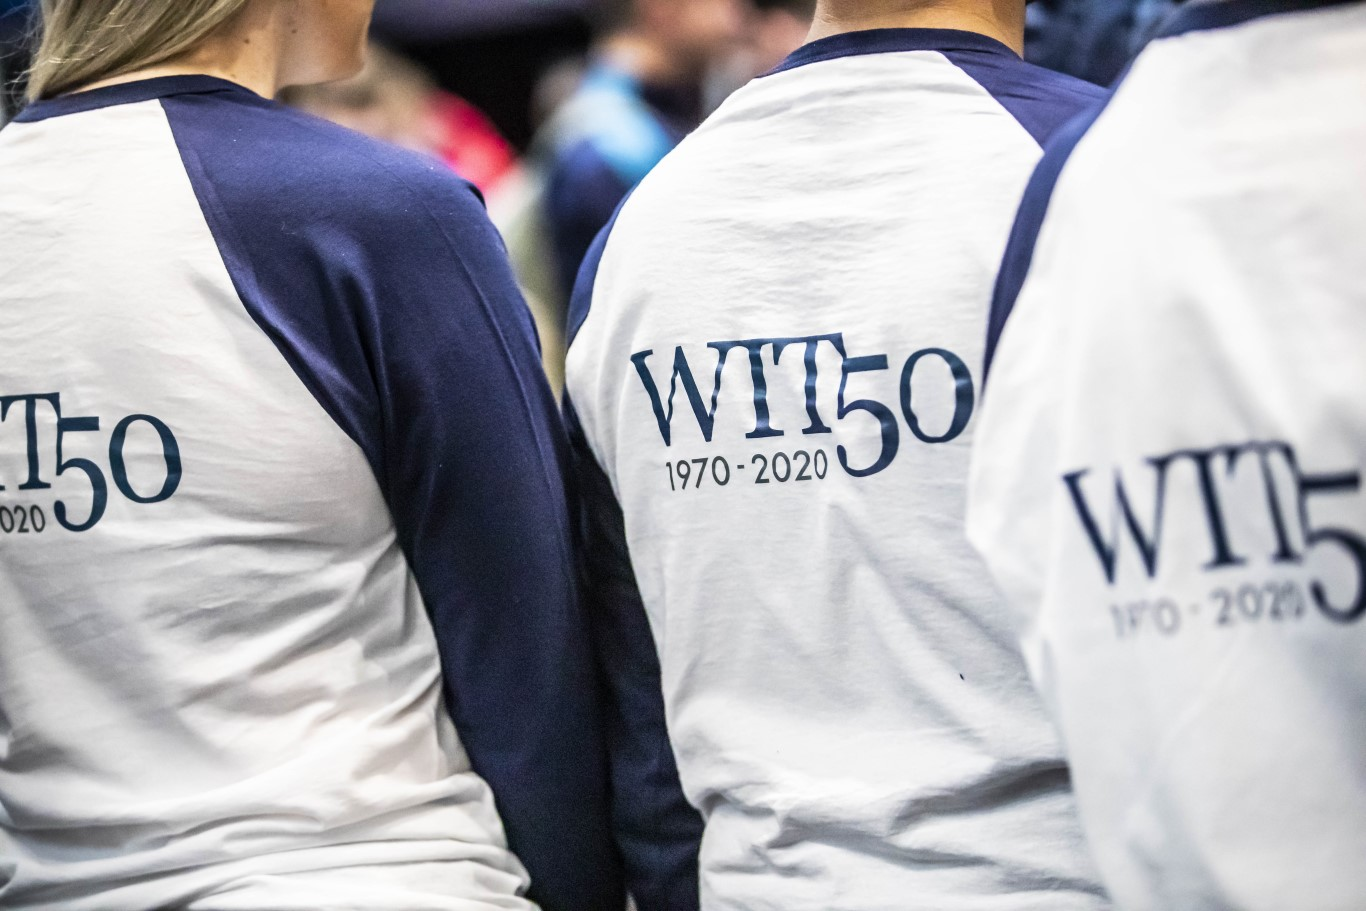 Students starting college in 2020 will be embarking on their journey as WIT marks its 50th year